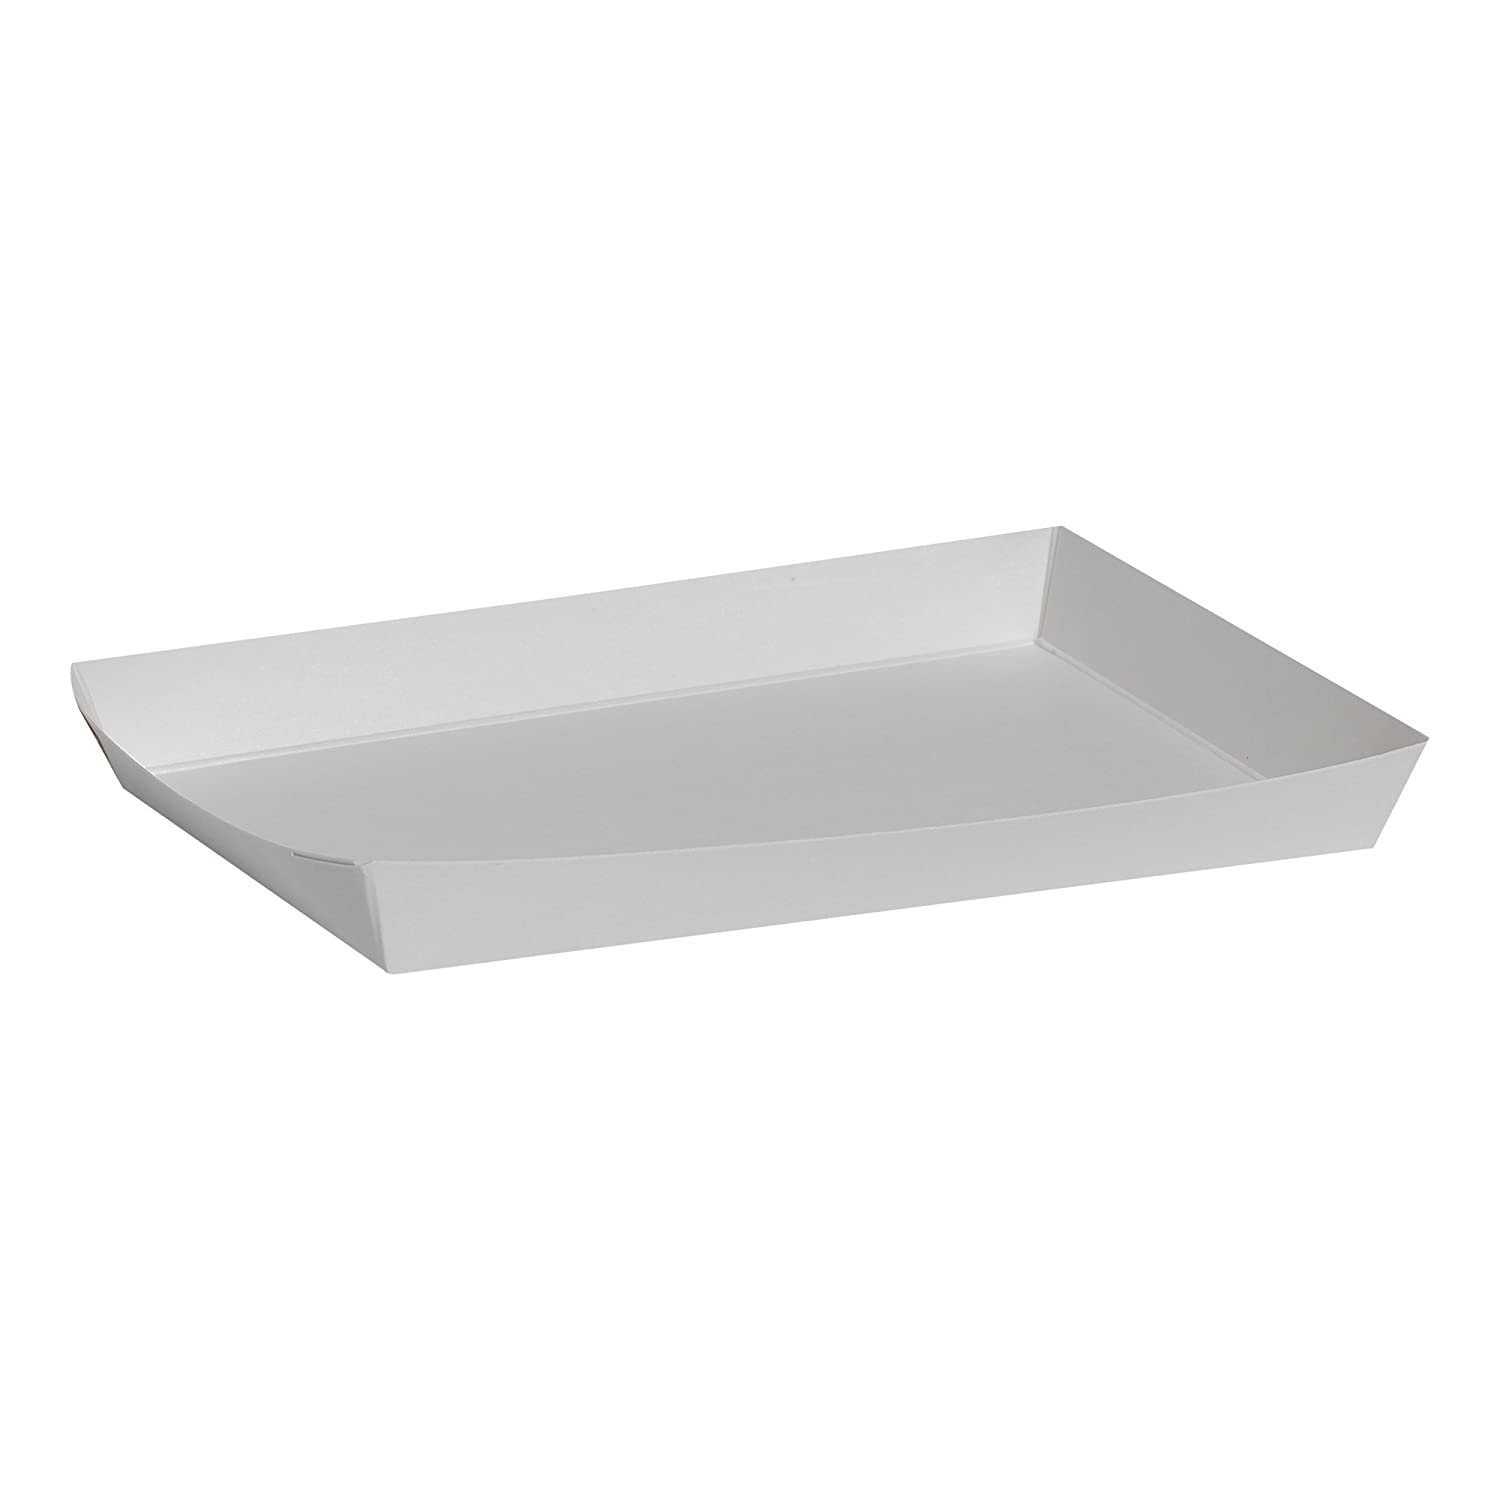 "Dixie Veltone Tray by GP PRO (Georgia-Pacific), 644, White, 5.75"" W x 8.25"" L x 0.88"" H, 1,000 Count (Case of 8 Packs, 125 Trays Per Pack)"